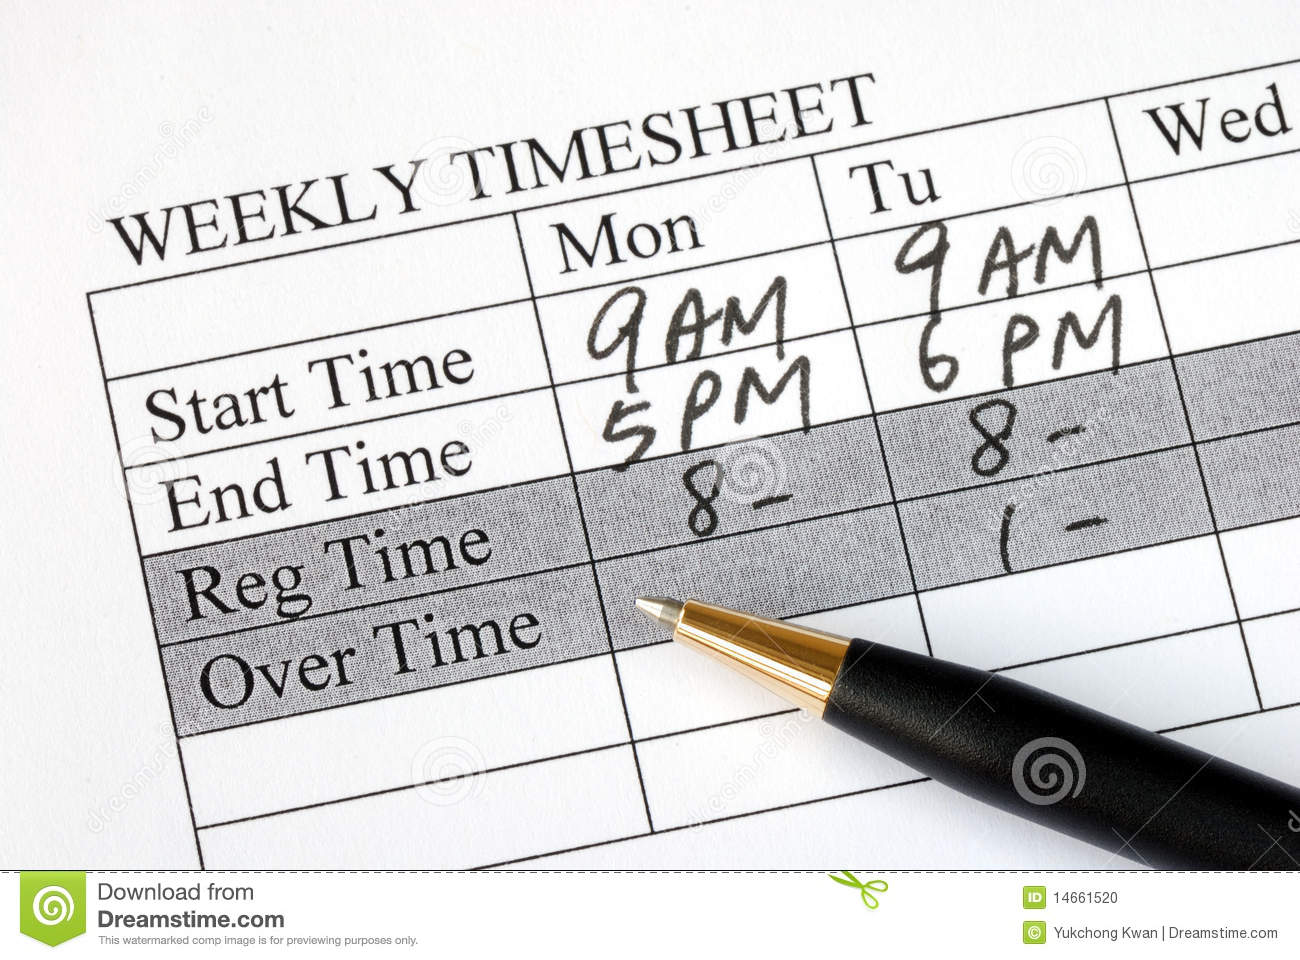 timesheets clipart #9